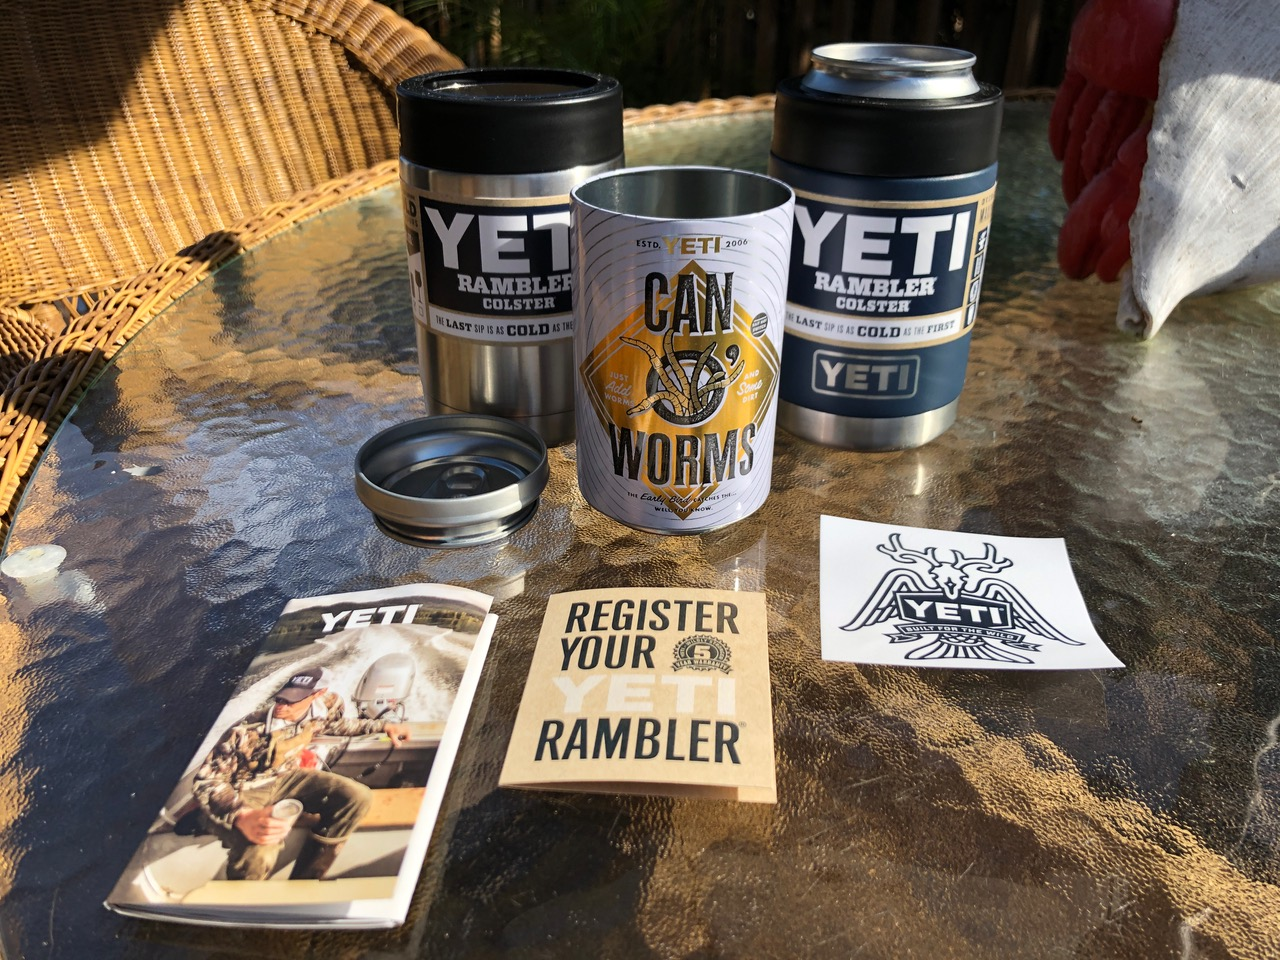 "YETI Rambler Colster Beer Insulator ""Unwrapped"" On Table"